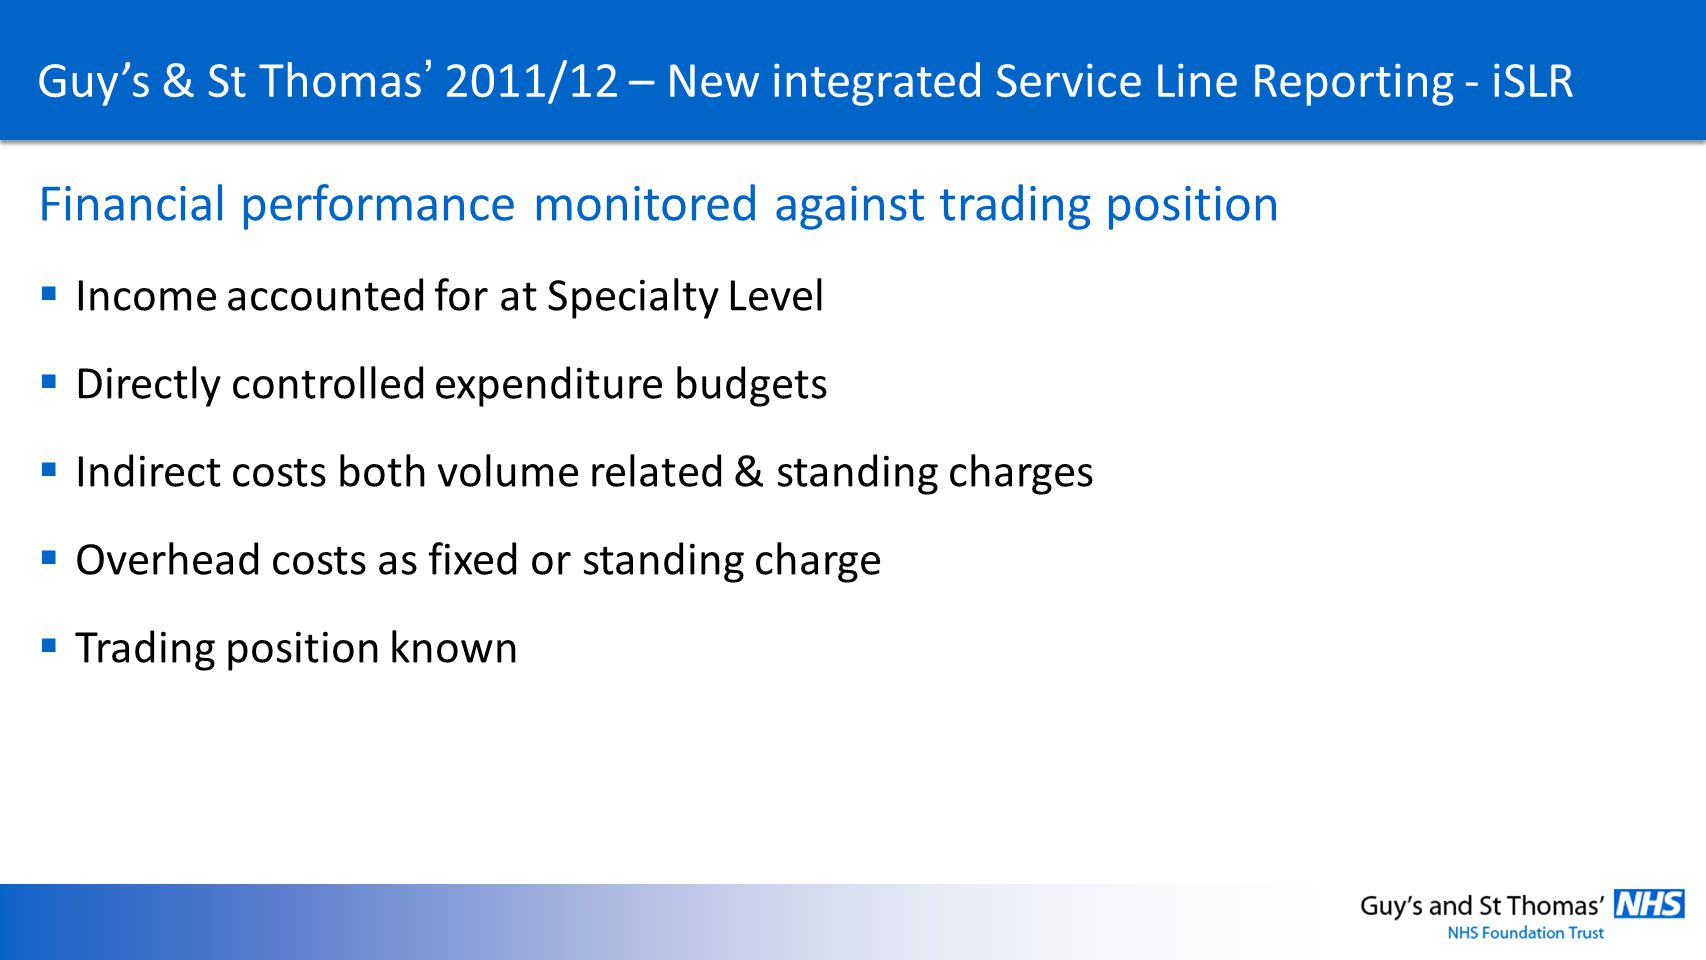 Financial performance monitored against trading position